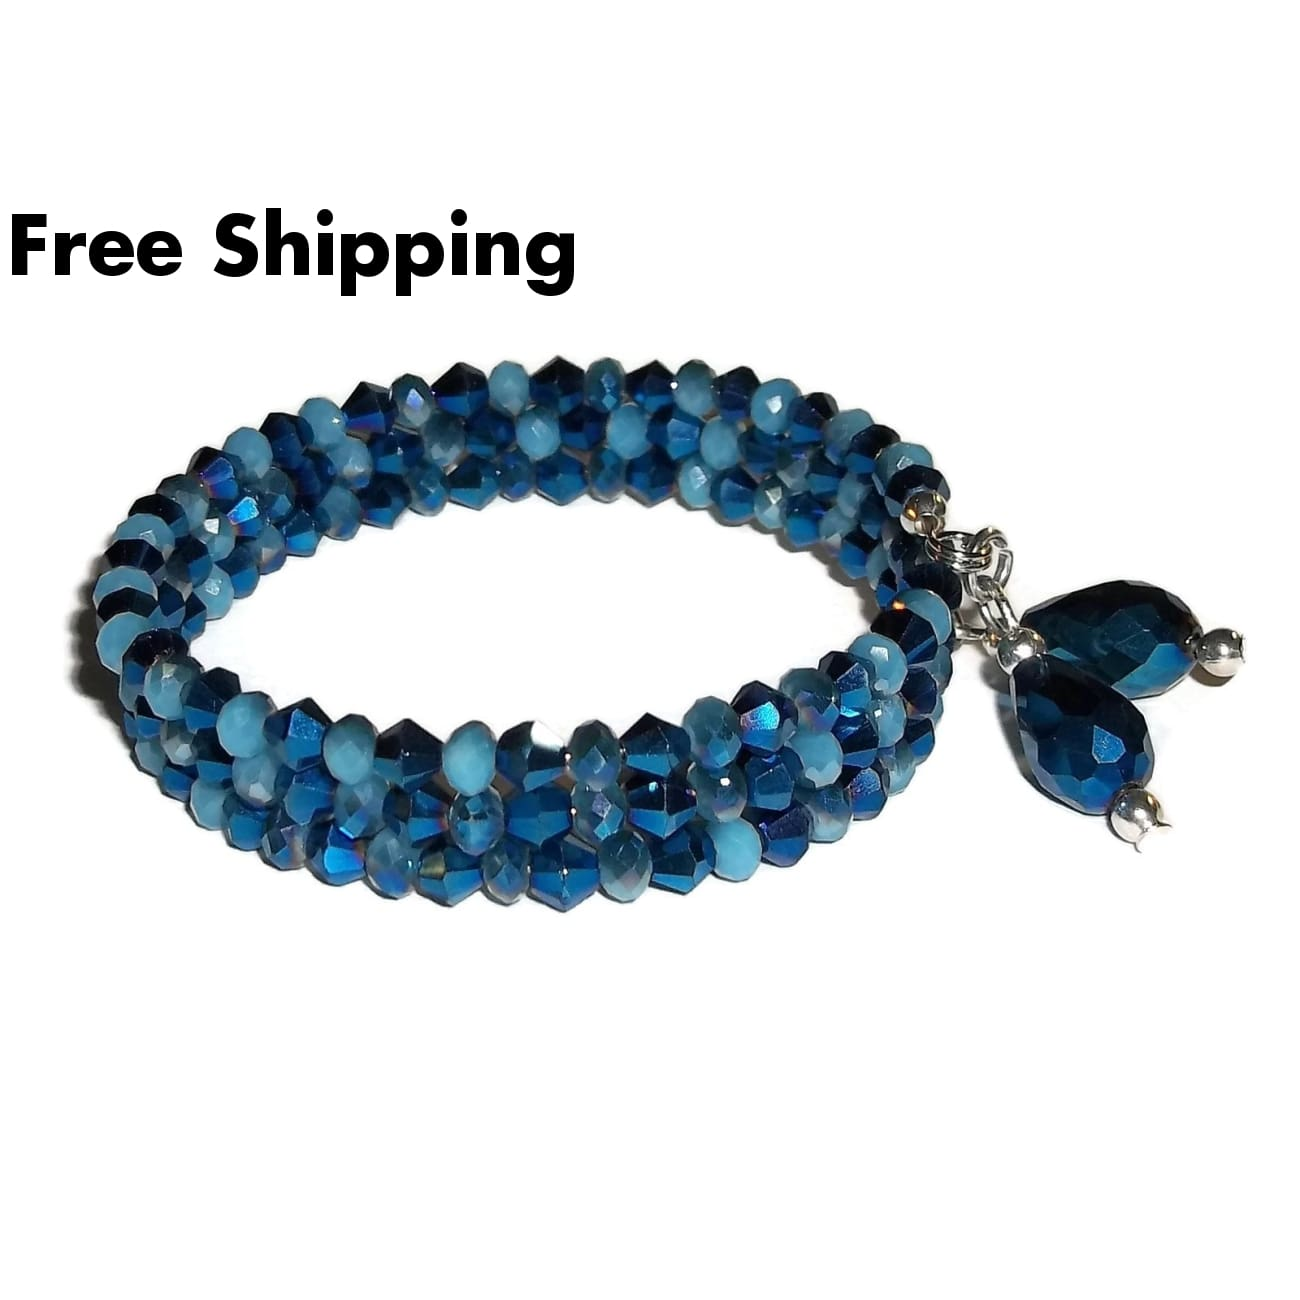 Teardrops Midnight Blue Metallic Crystal Artisan Crafted Wrap Bracelet(Sz S-M) - New Arrival